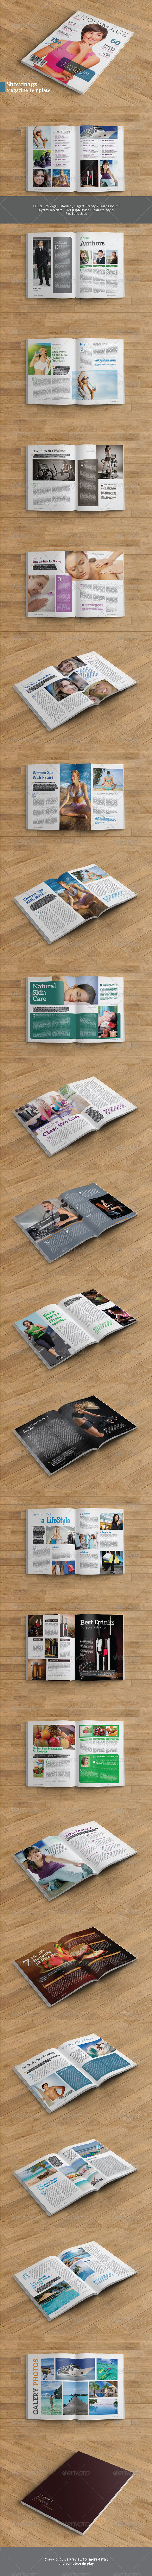 A4 Showmagz Magazine Template - Magazines Print Templates